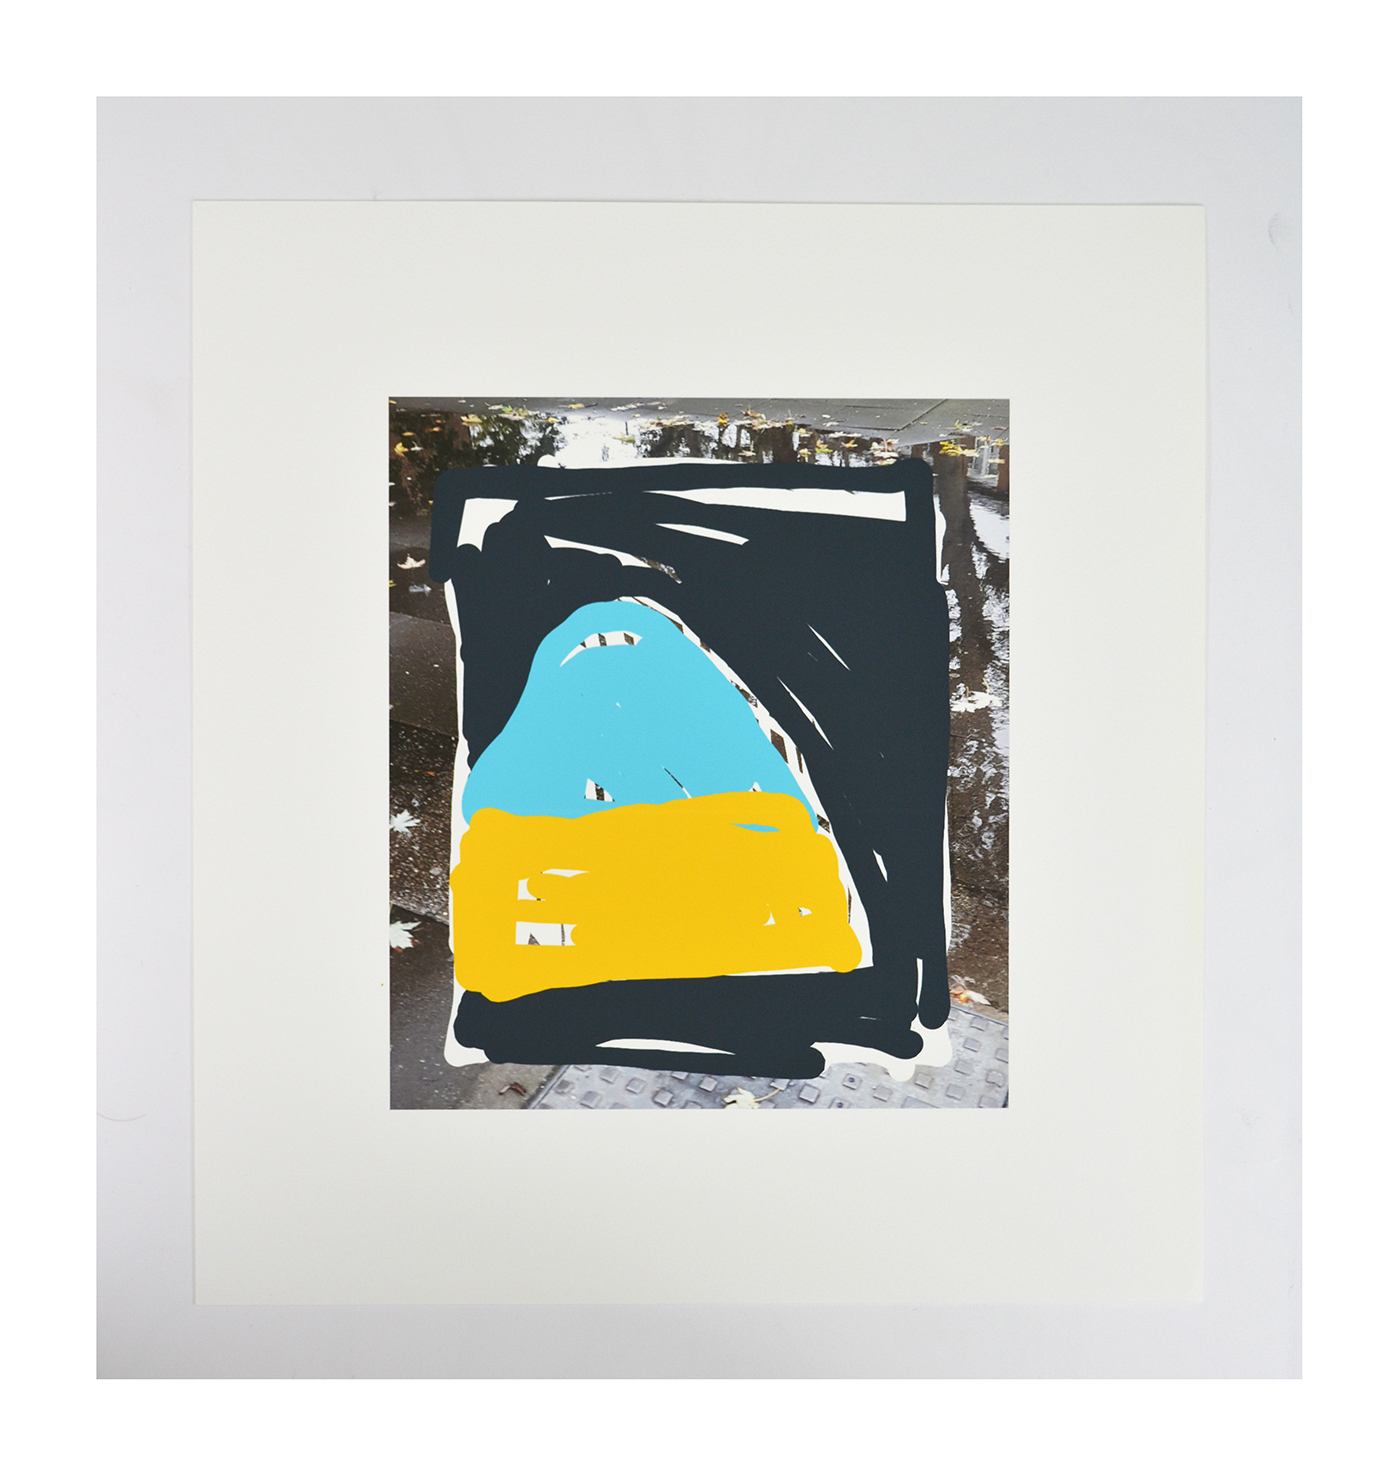 Cave/puddle Archival inkjet print on Somerset paper 40x30cm 2020 edition of 10